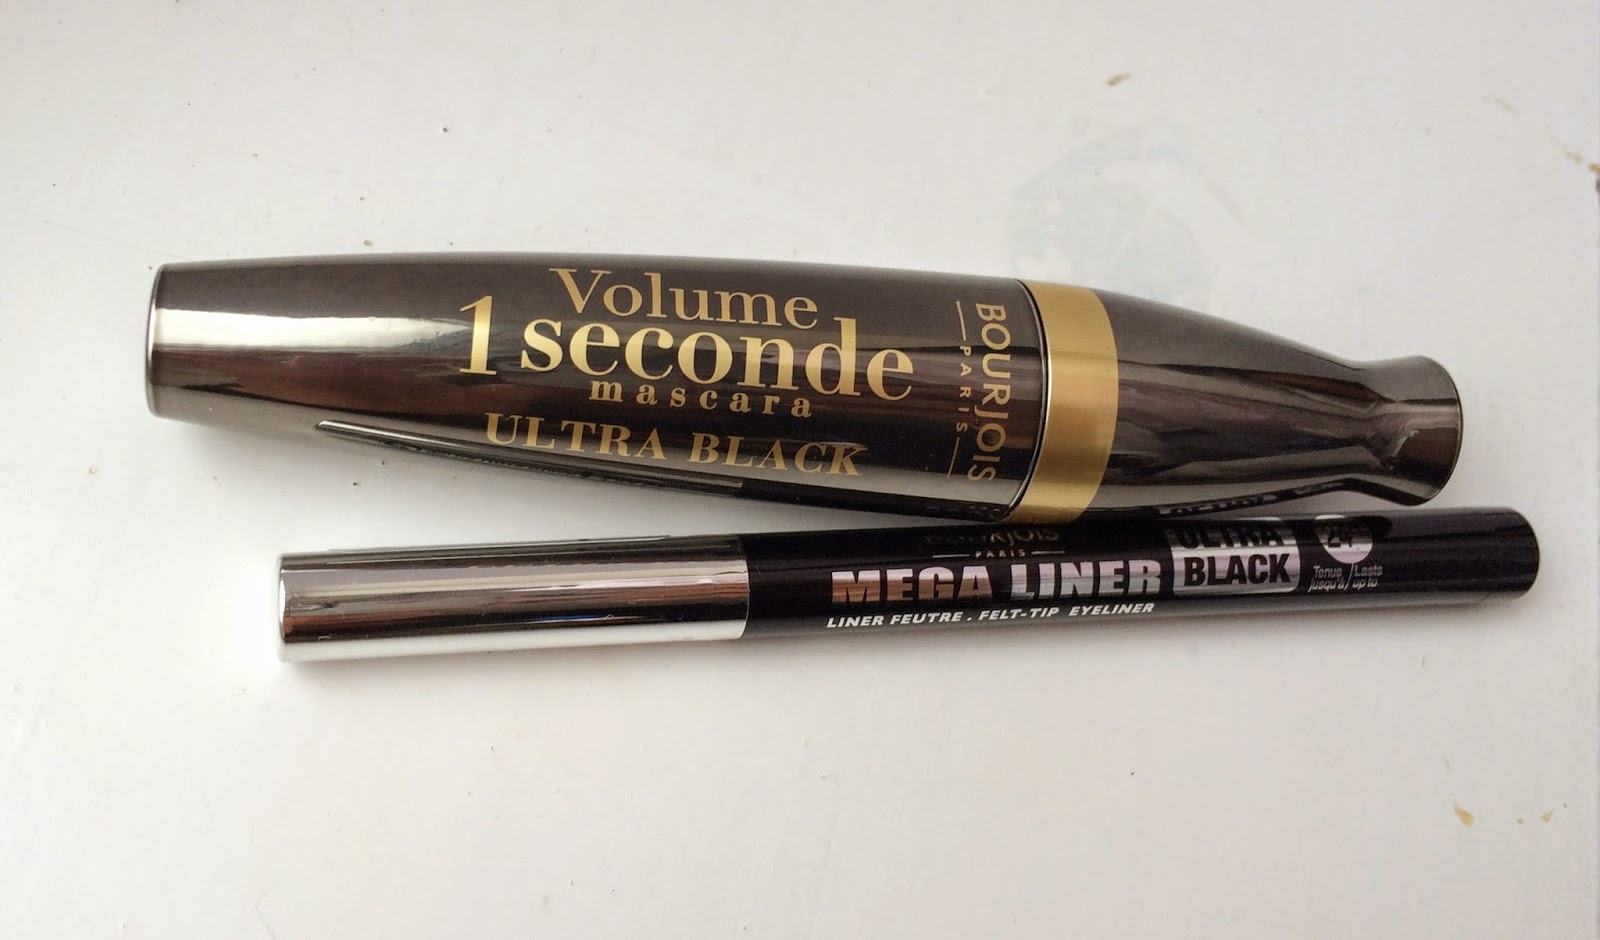 bourjois-ultra-black-mega-liner-1-seconde-volume-mascara-autumn-winter-2014-new